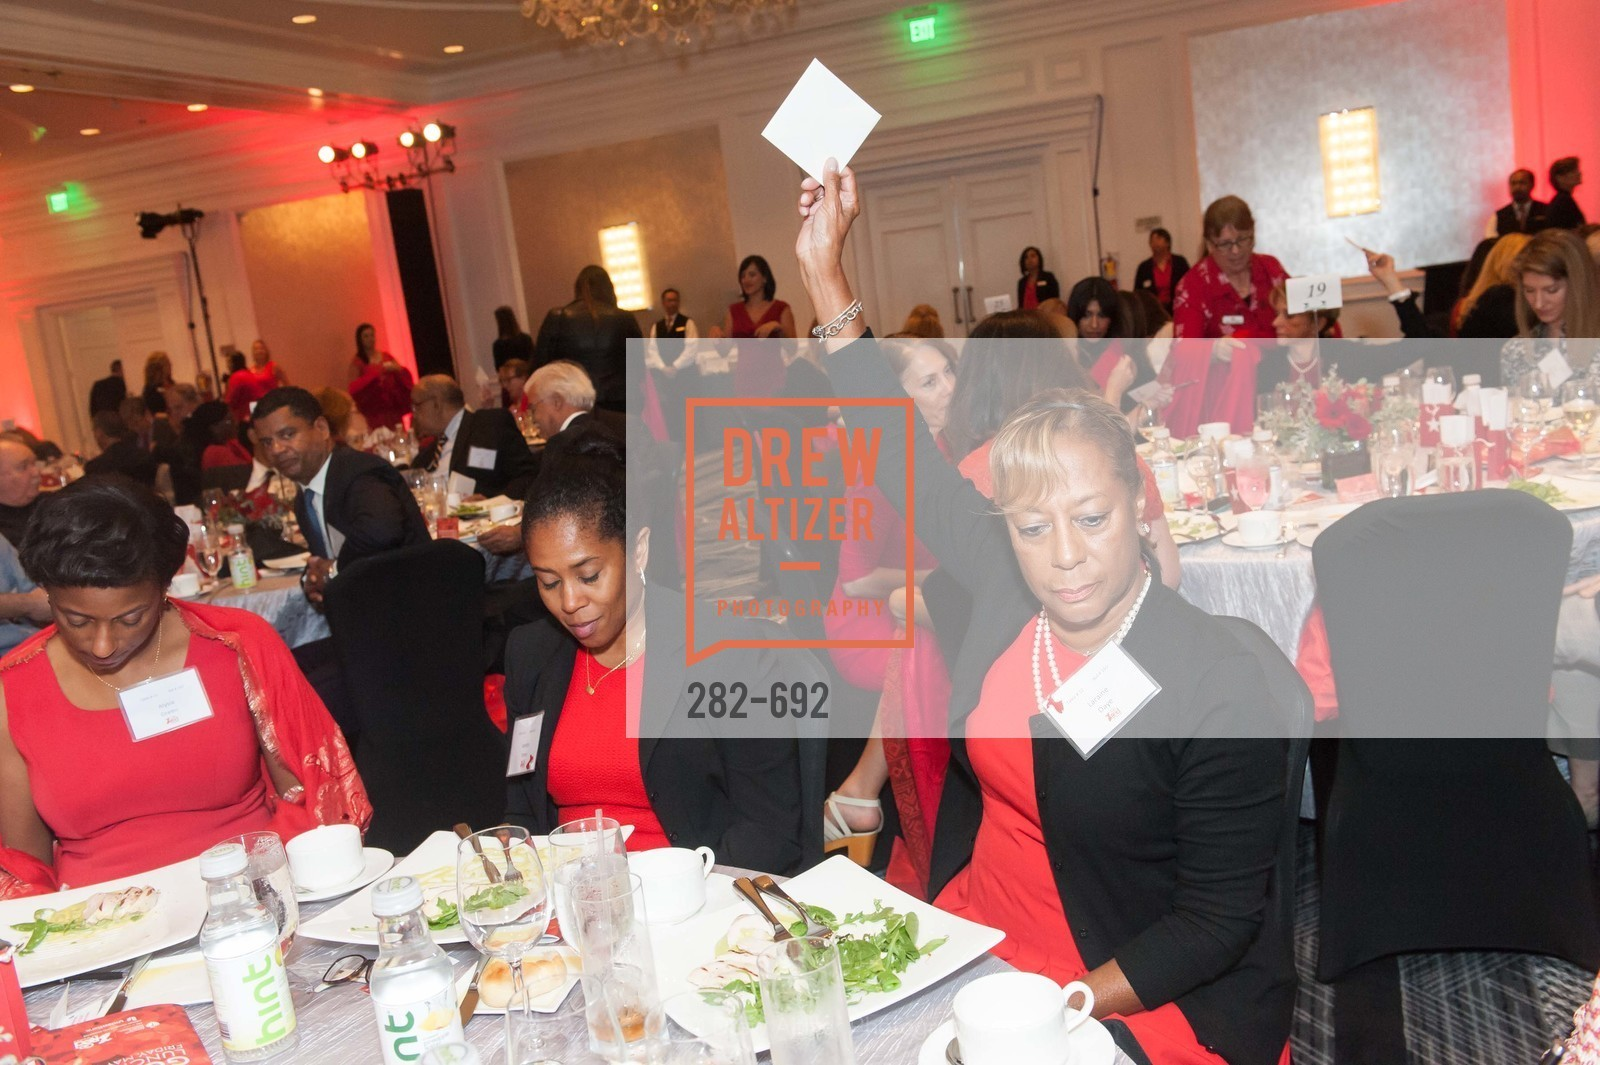 Alysia Green, Josetta James, Laraine Daye, 2015 GoRed for Women Luncheon, US, May 2nd, 2015,Drew Altizer, Drew Altizer Photography, full-service event agency, private events, San Francisco photographer, photographer California